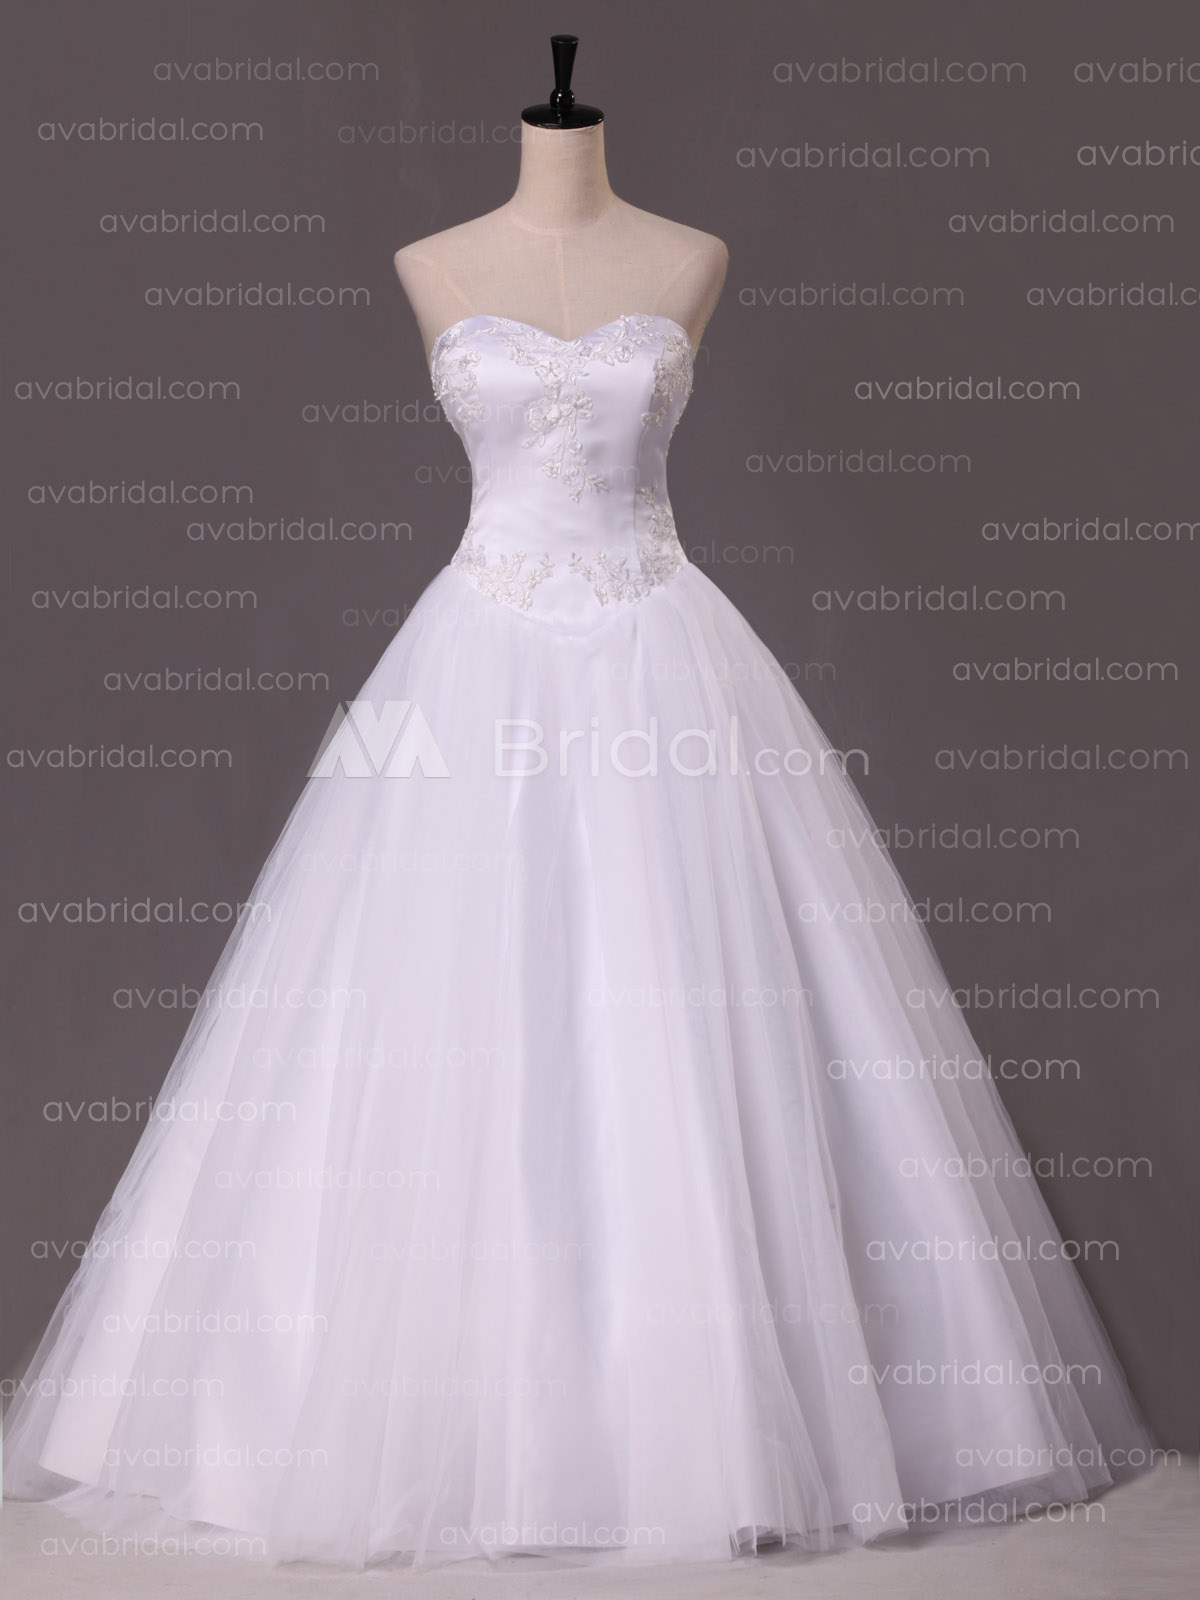 Princess Wedding Dress - Amber - Front